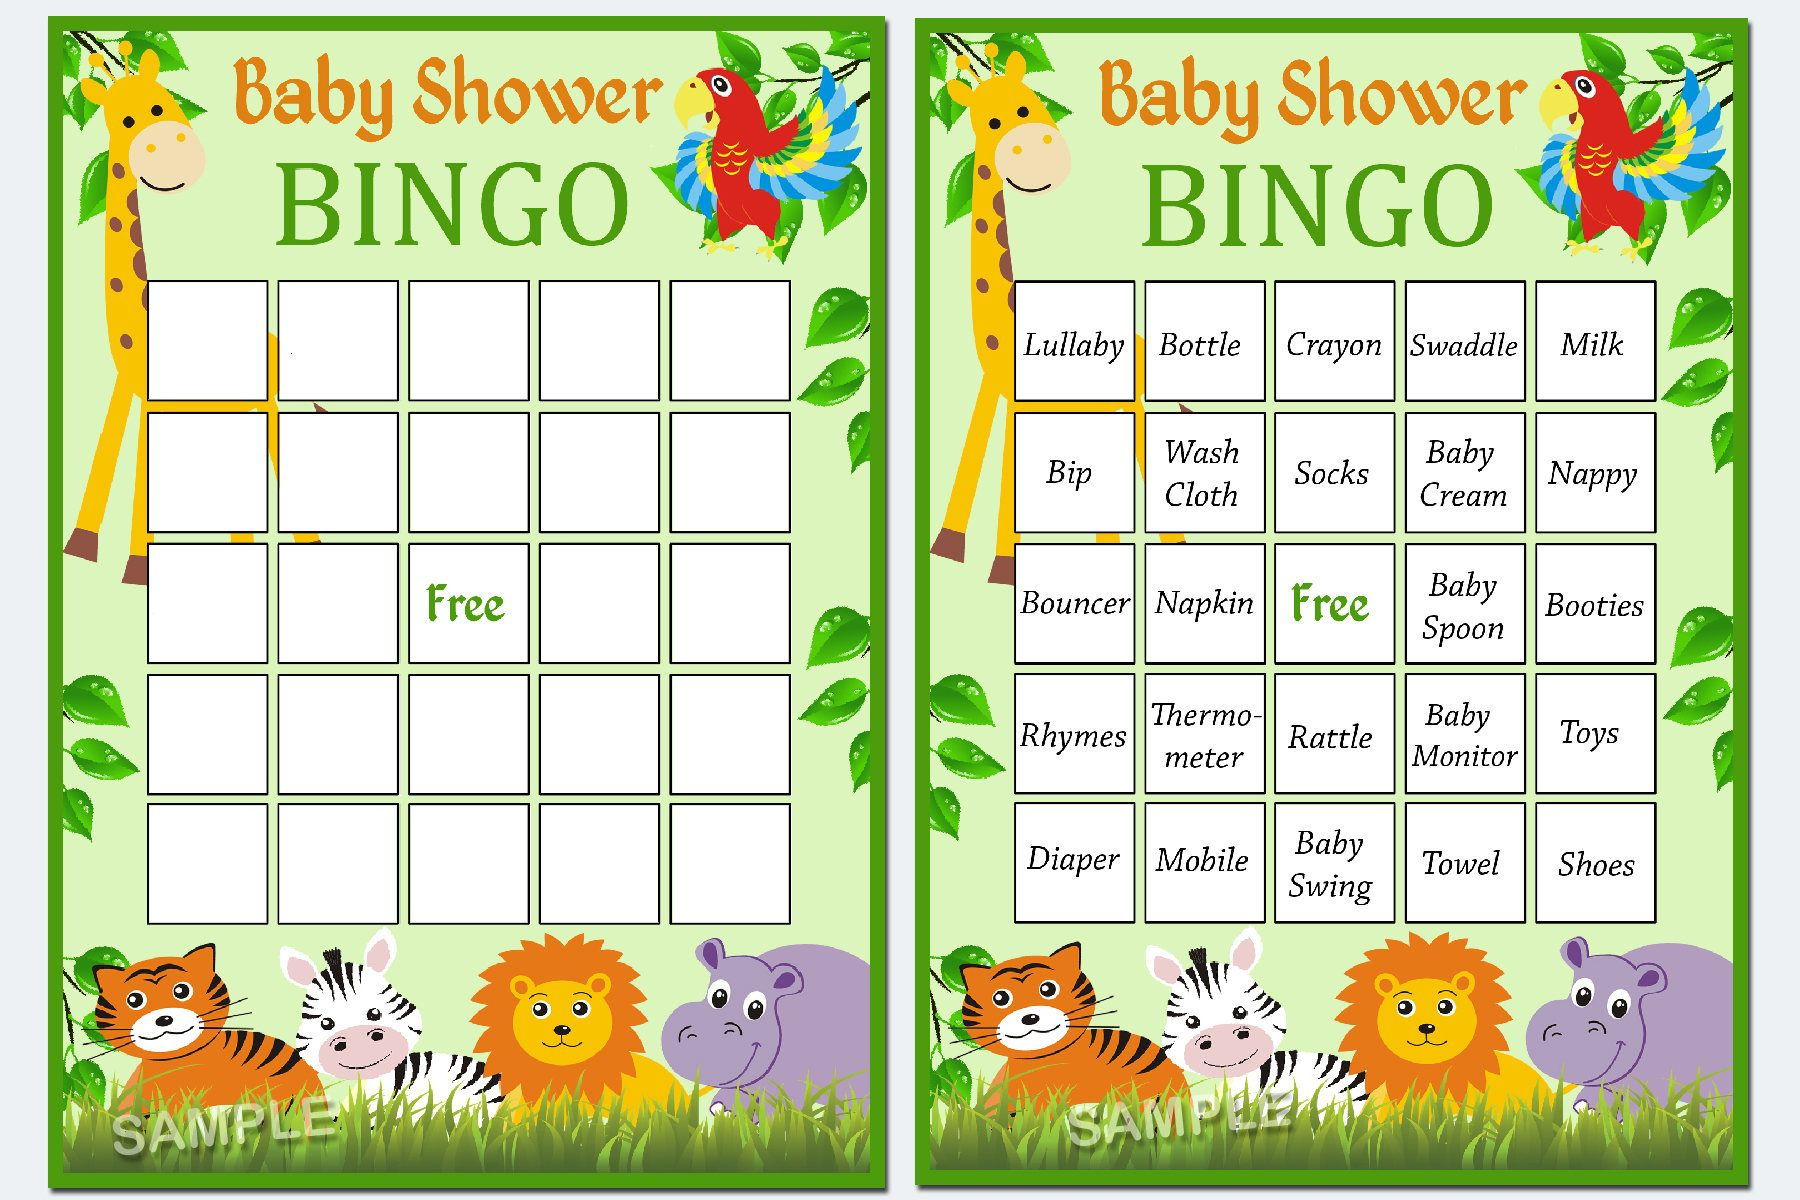 Jungle Baby Shower Bingo, 60 Jungle Baby Shower Bingo Cards